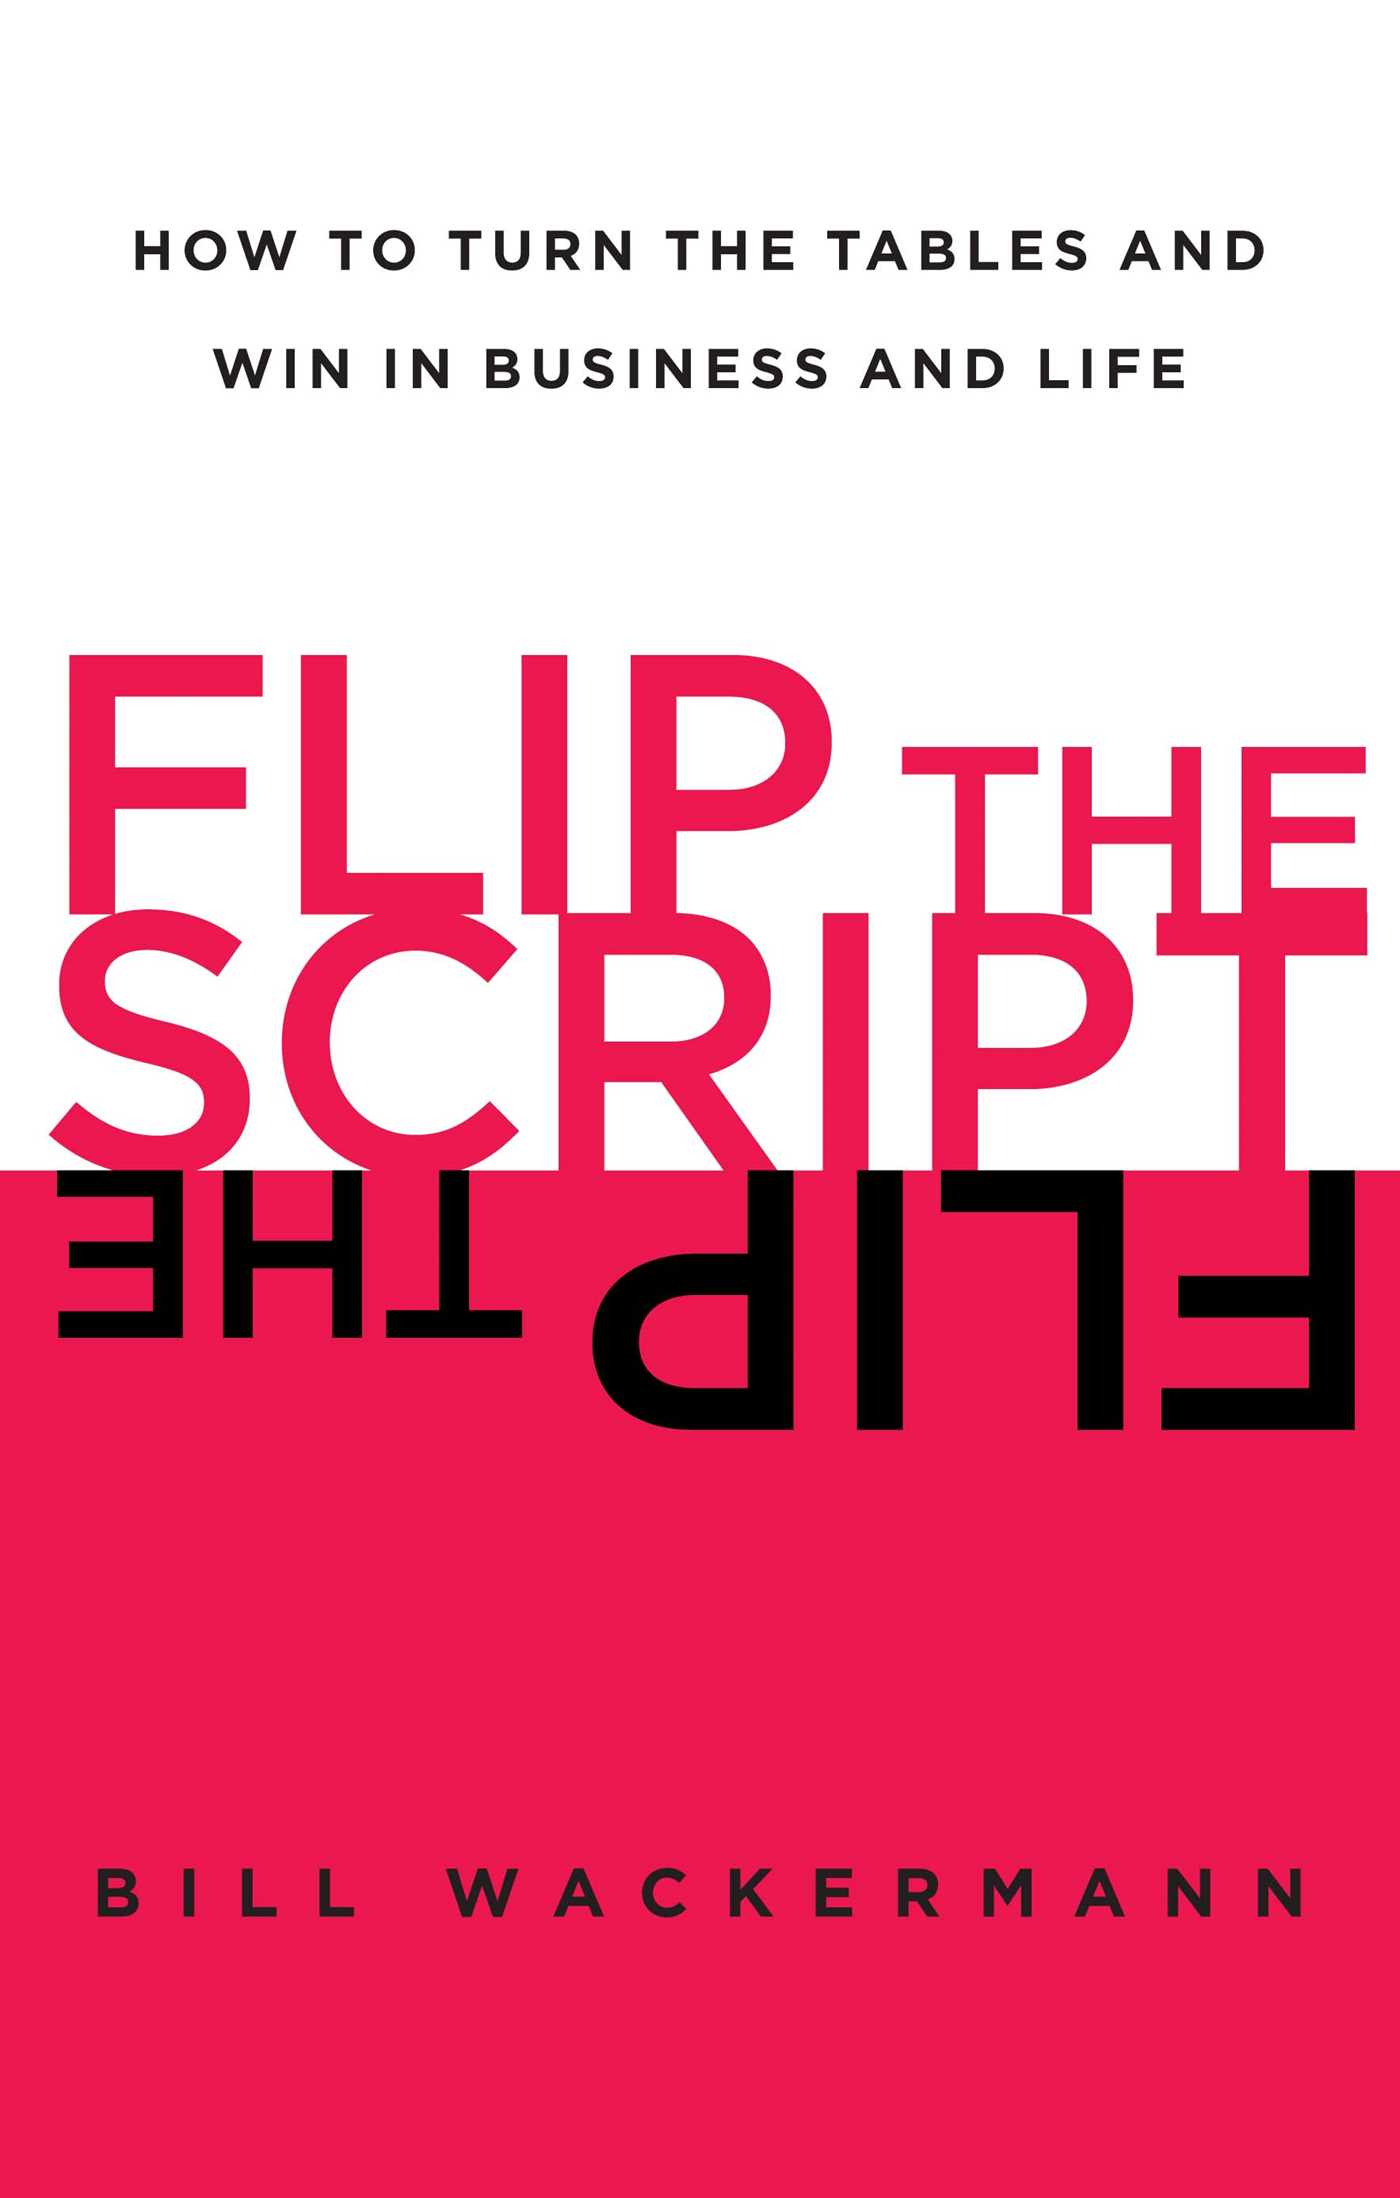 Flip-the-script-9781451618419_hr